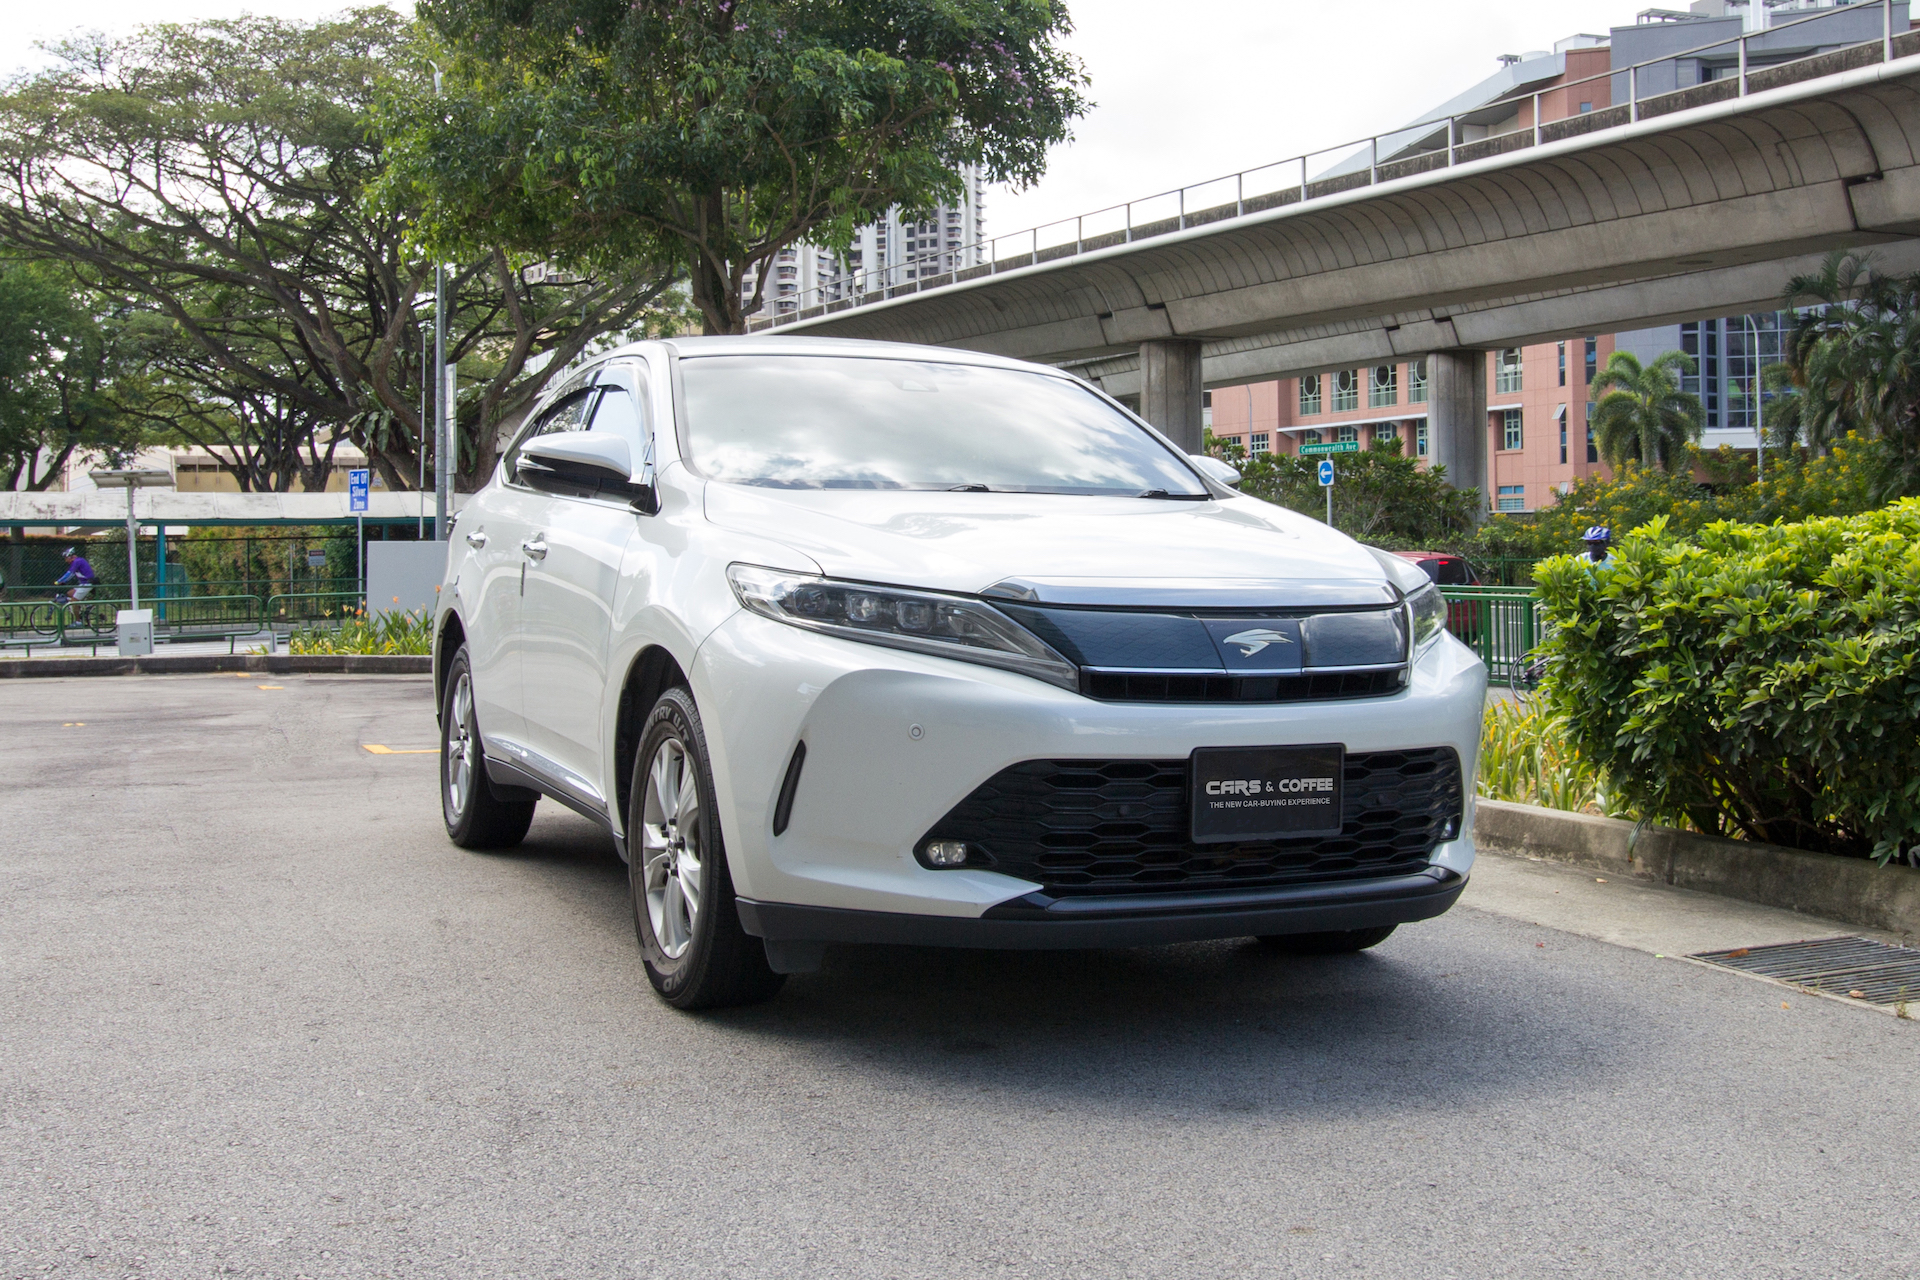 Certified Pre-Owned Toyota Harrier 2.0A M-Grade Turbo | Cars and Coffee Singapore